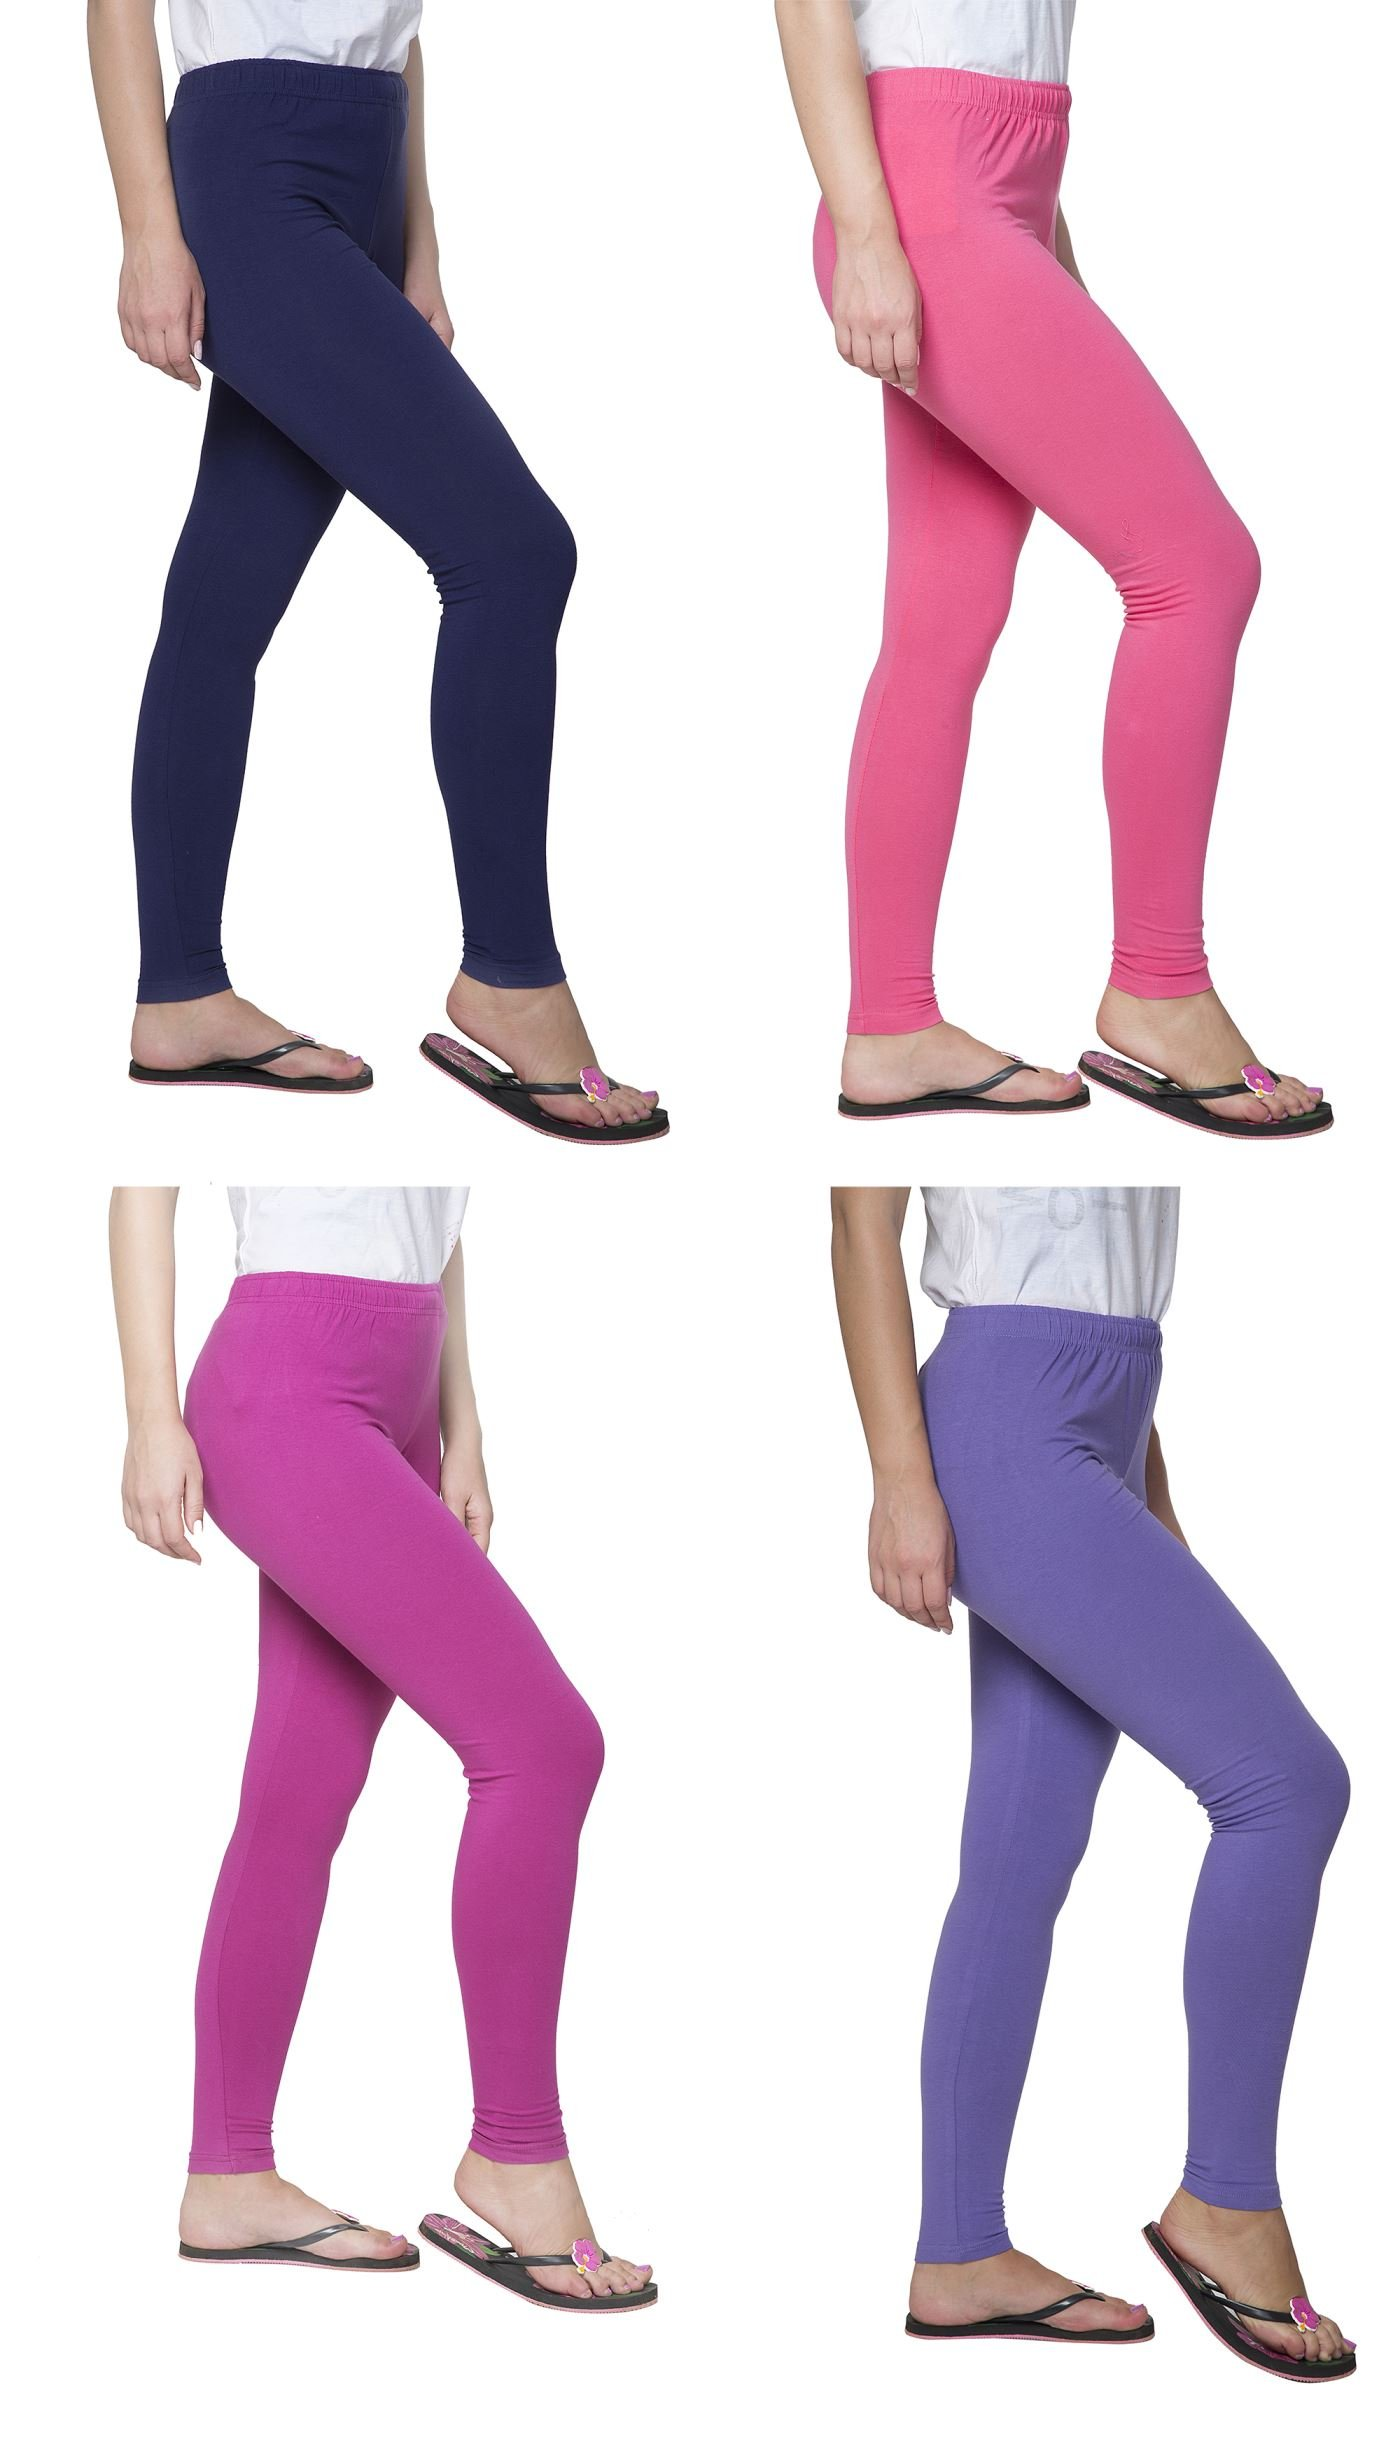 Clifton Women's Cotton Spandex Fine Jersey Leggings Pack Of 4-Assorted-2-XL by Clifton (Image #2)